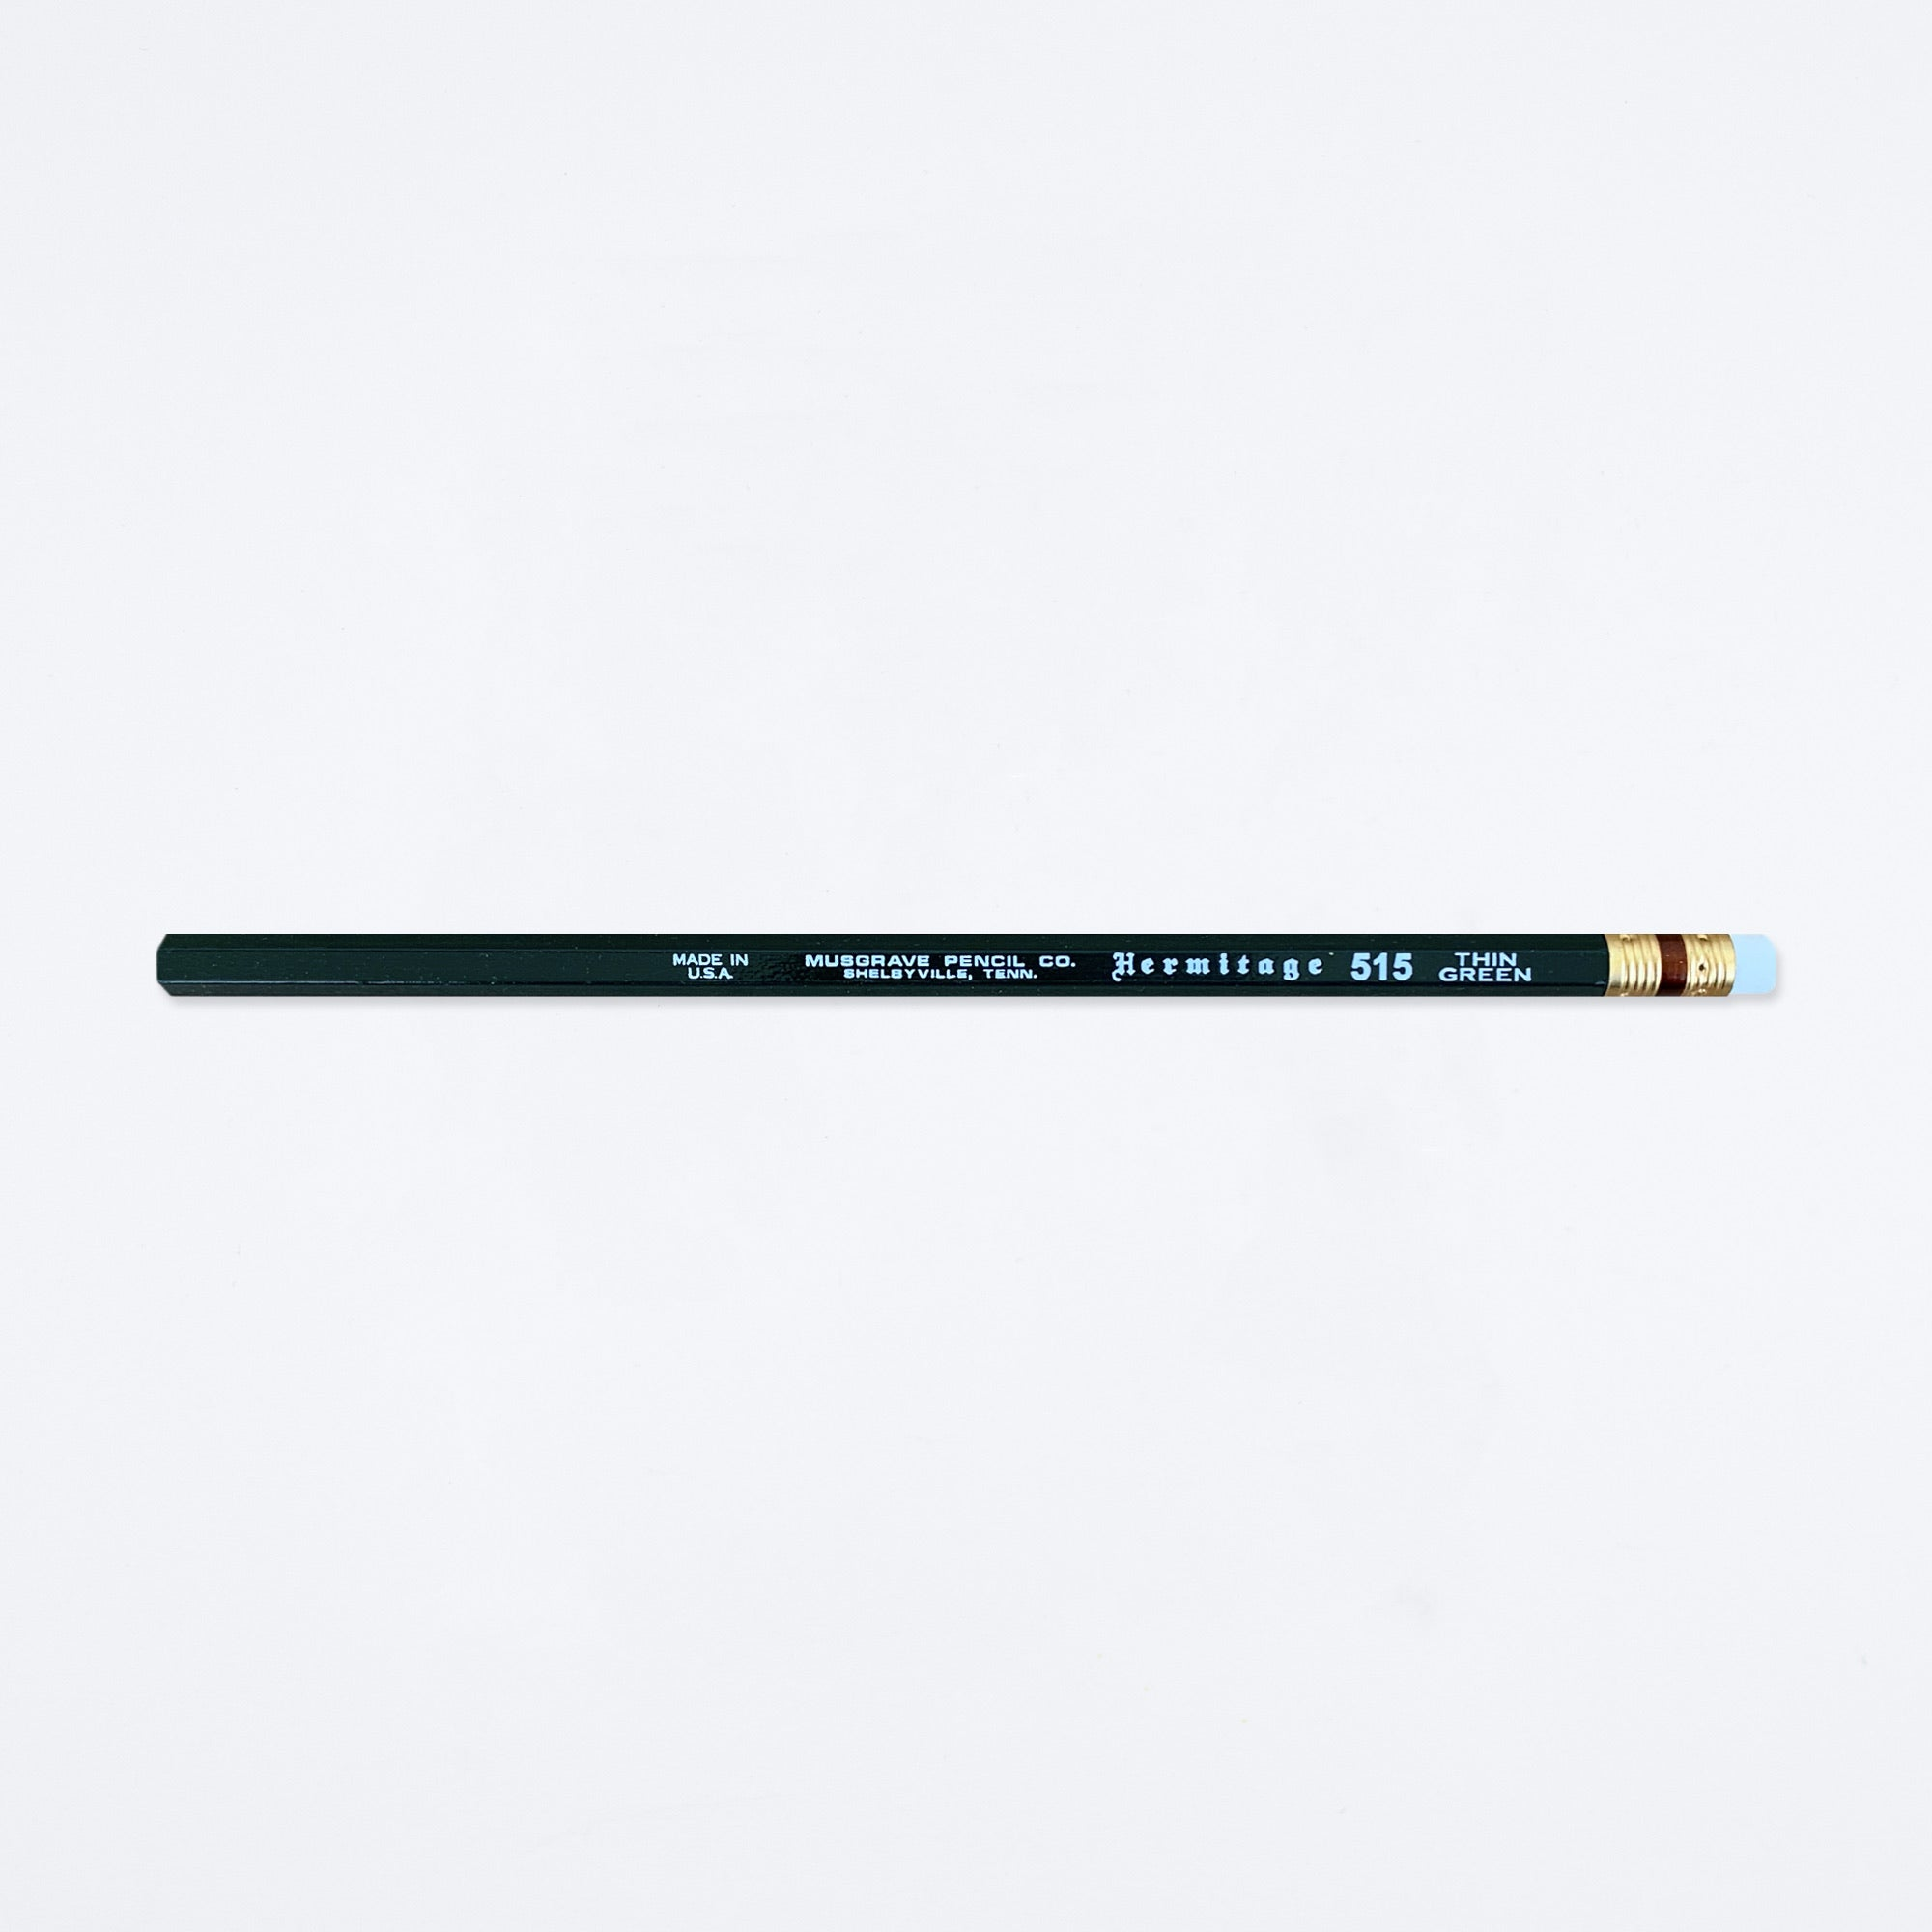 Hermitage Thin Green Pencil